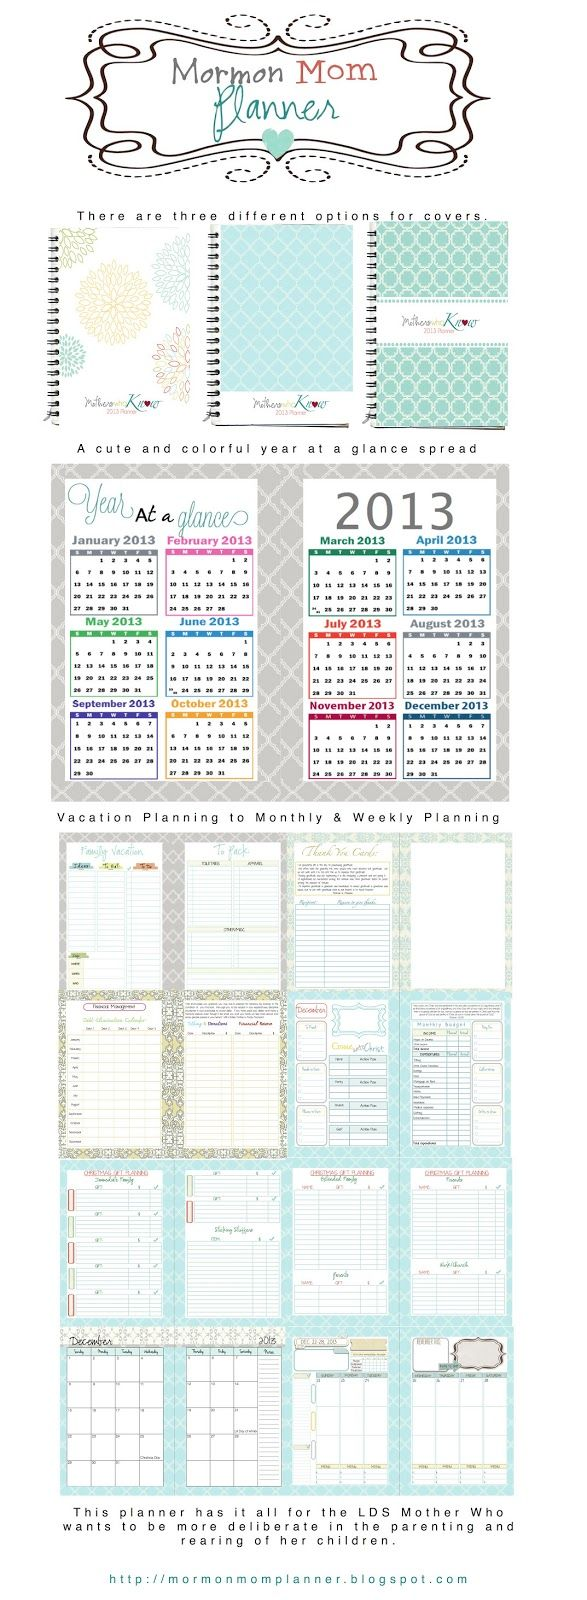 17 Best images about Mormon Mom Planner on Pinterest | Mom ...